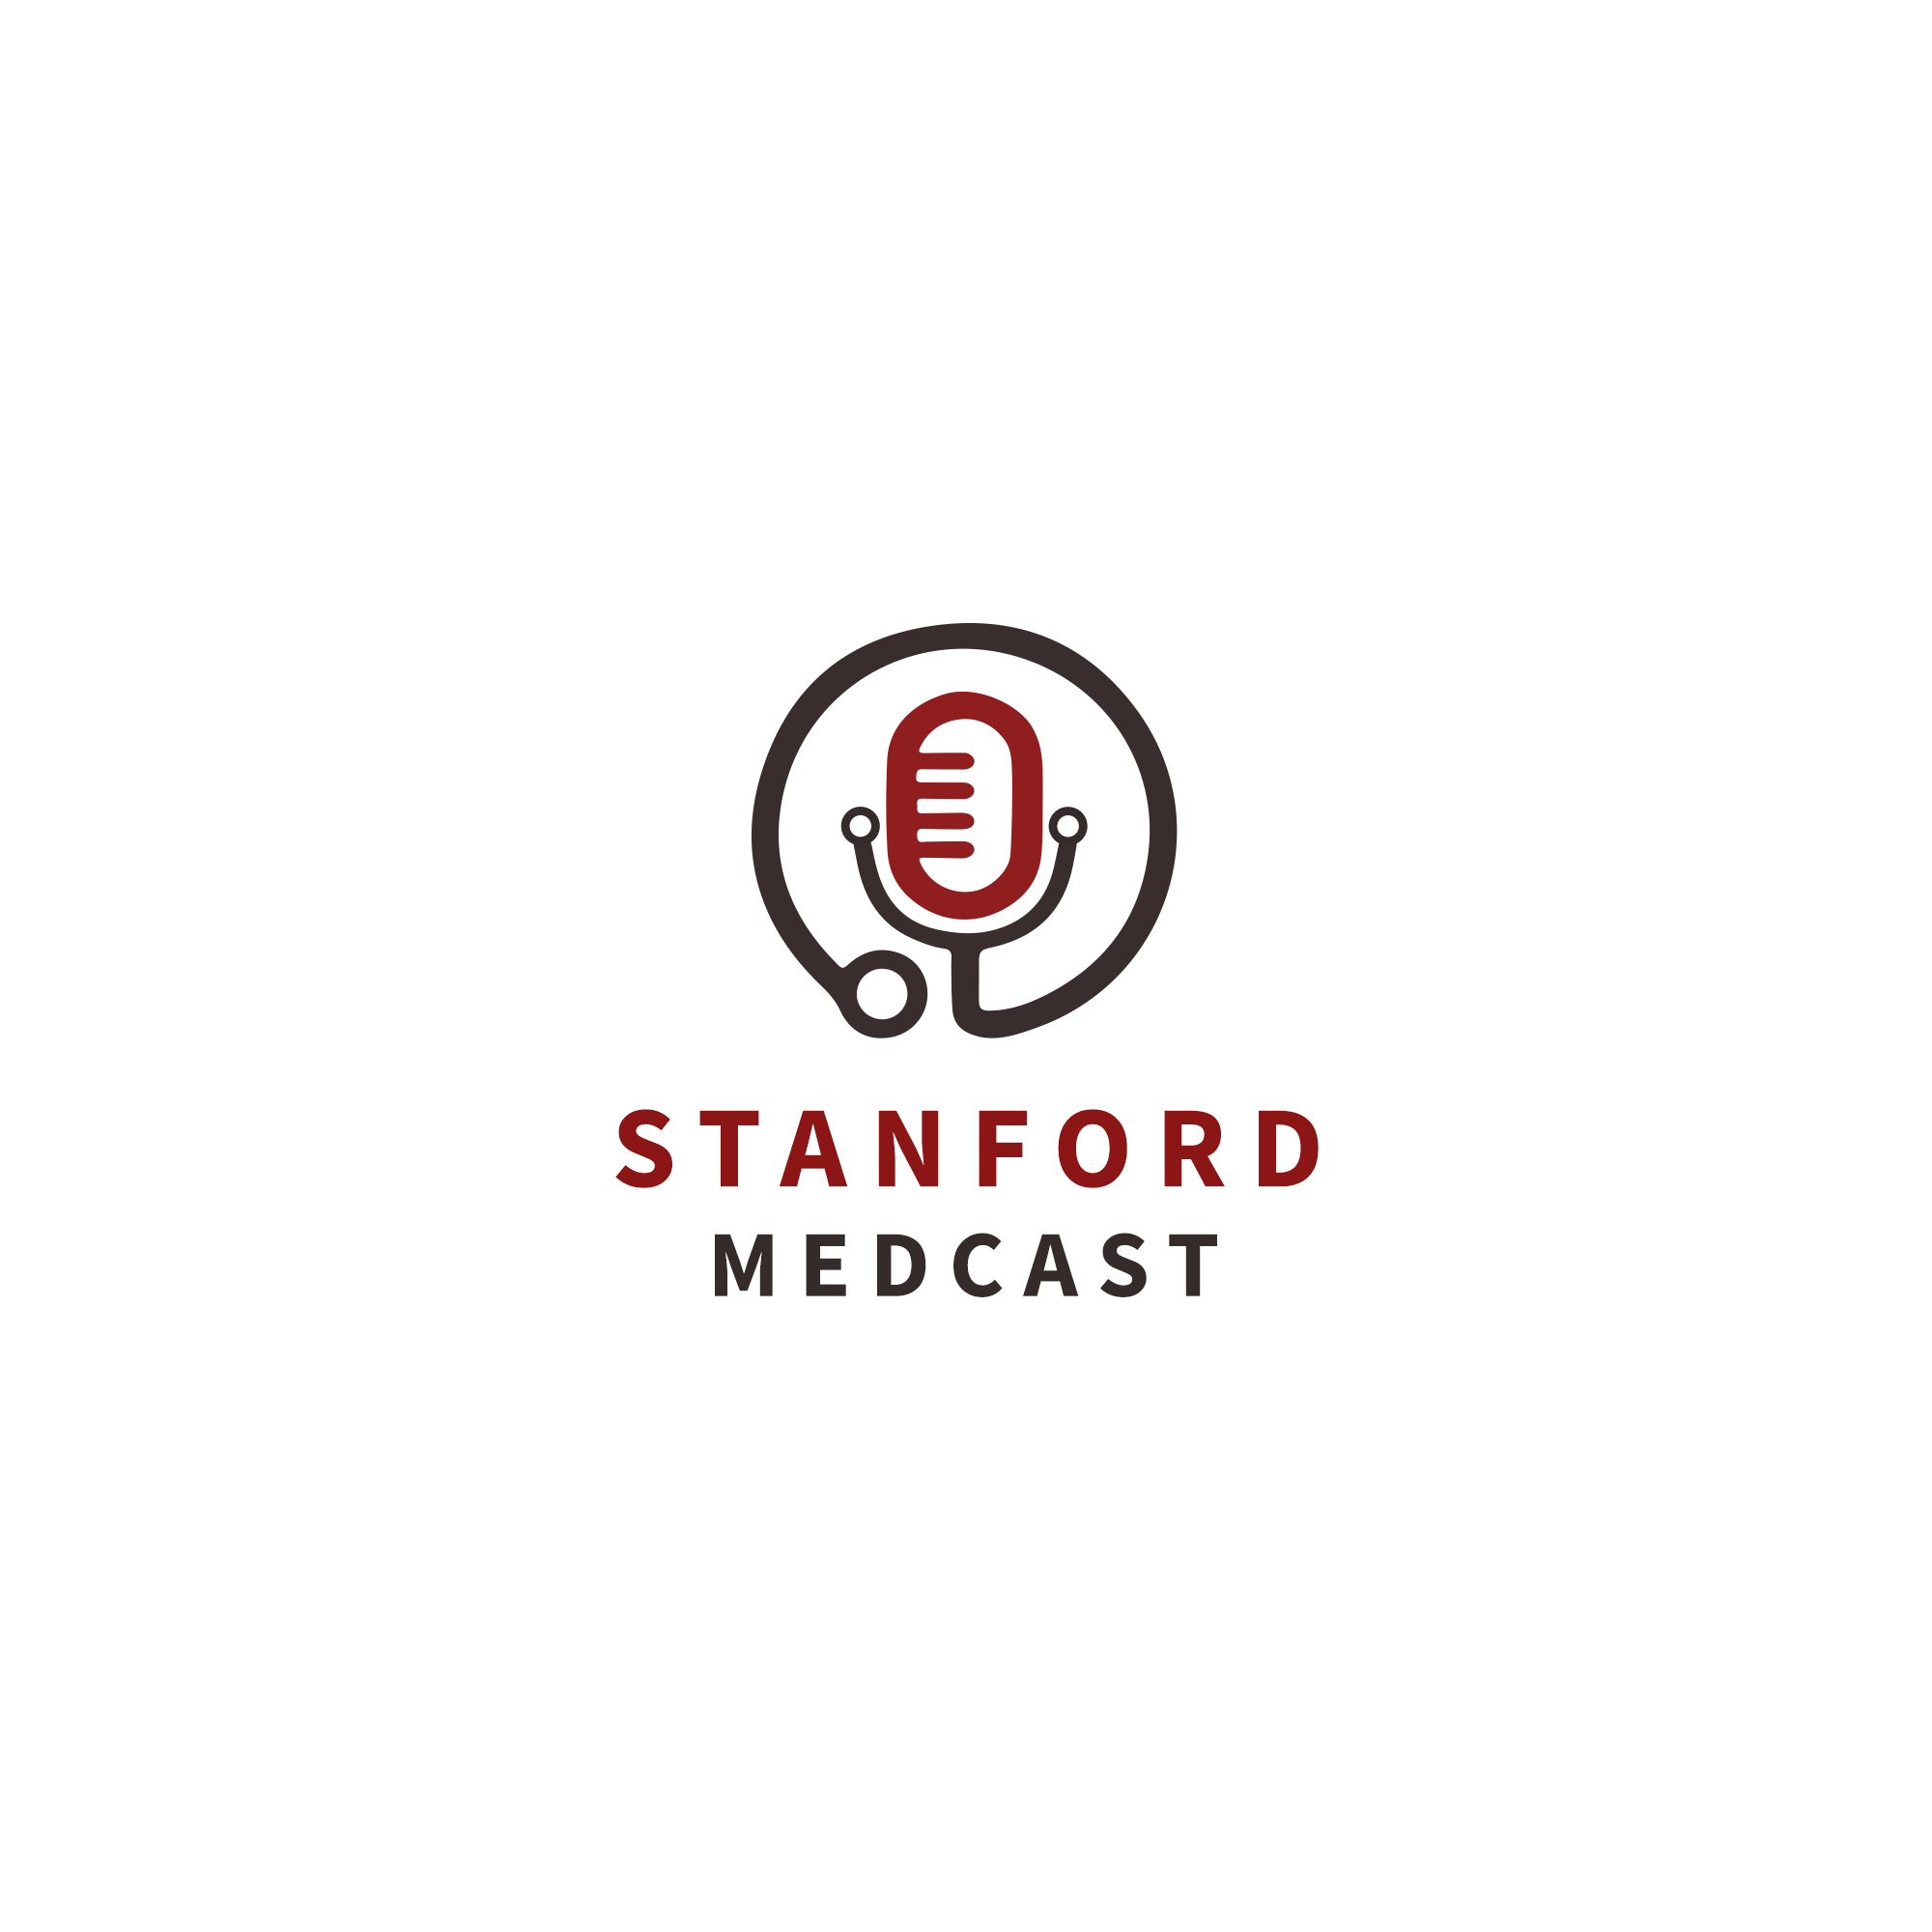 Stanford Medcast Episode 1: COVID-19 Mini-series - Management of Diabetes patients in COVID Banner